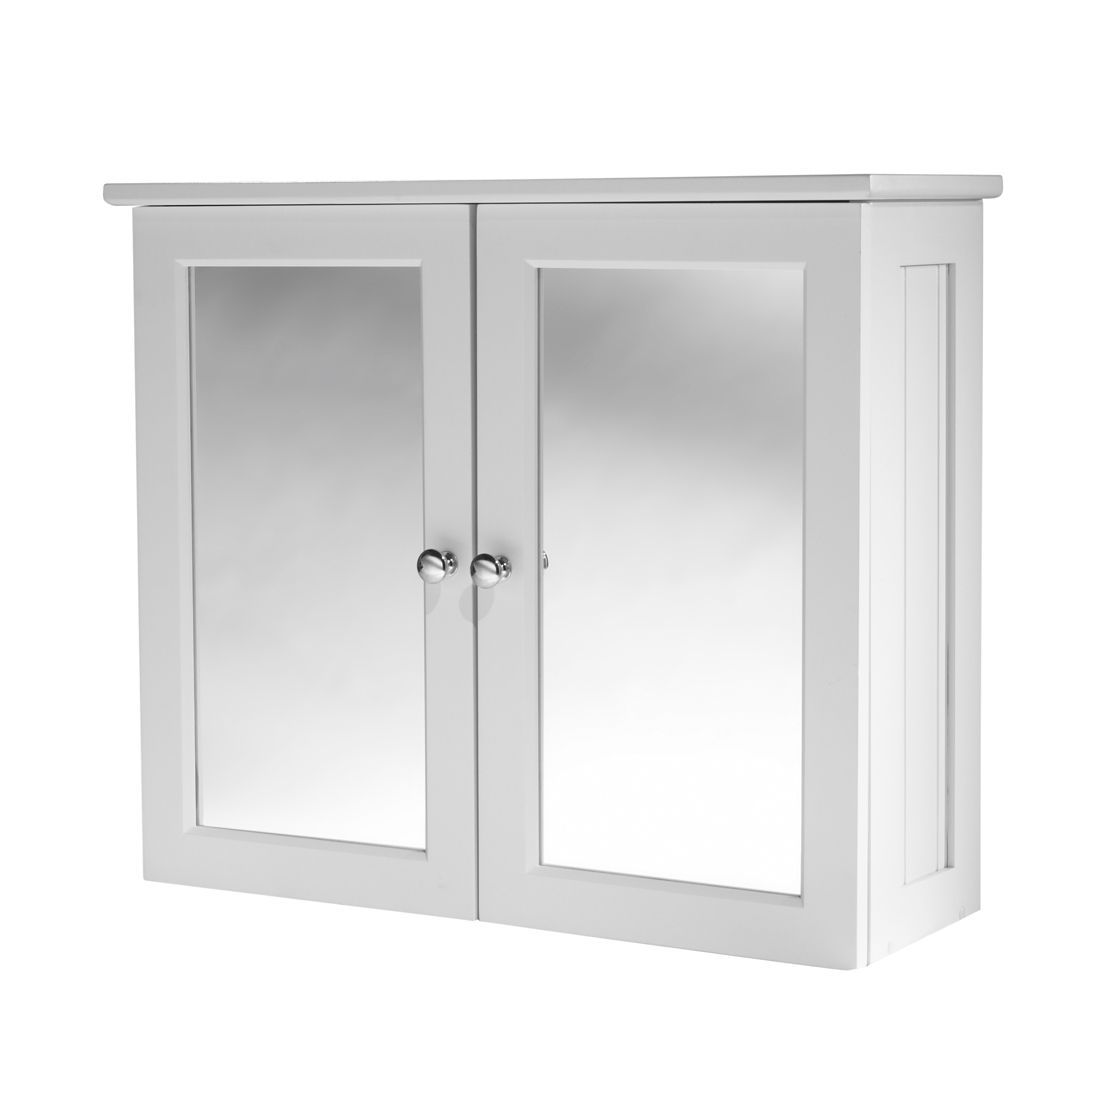 white tongue and groove bathroom cabinet b amp q adelite tongue amp groove lacquered white mirror cabinet 25891